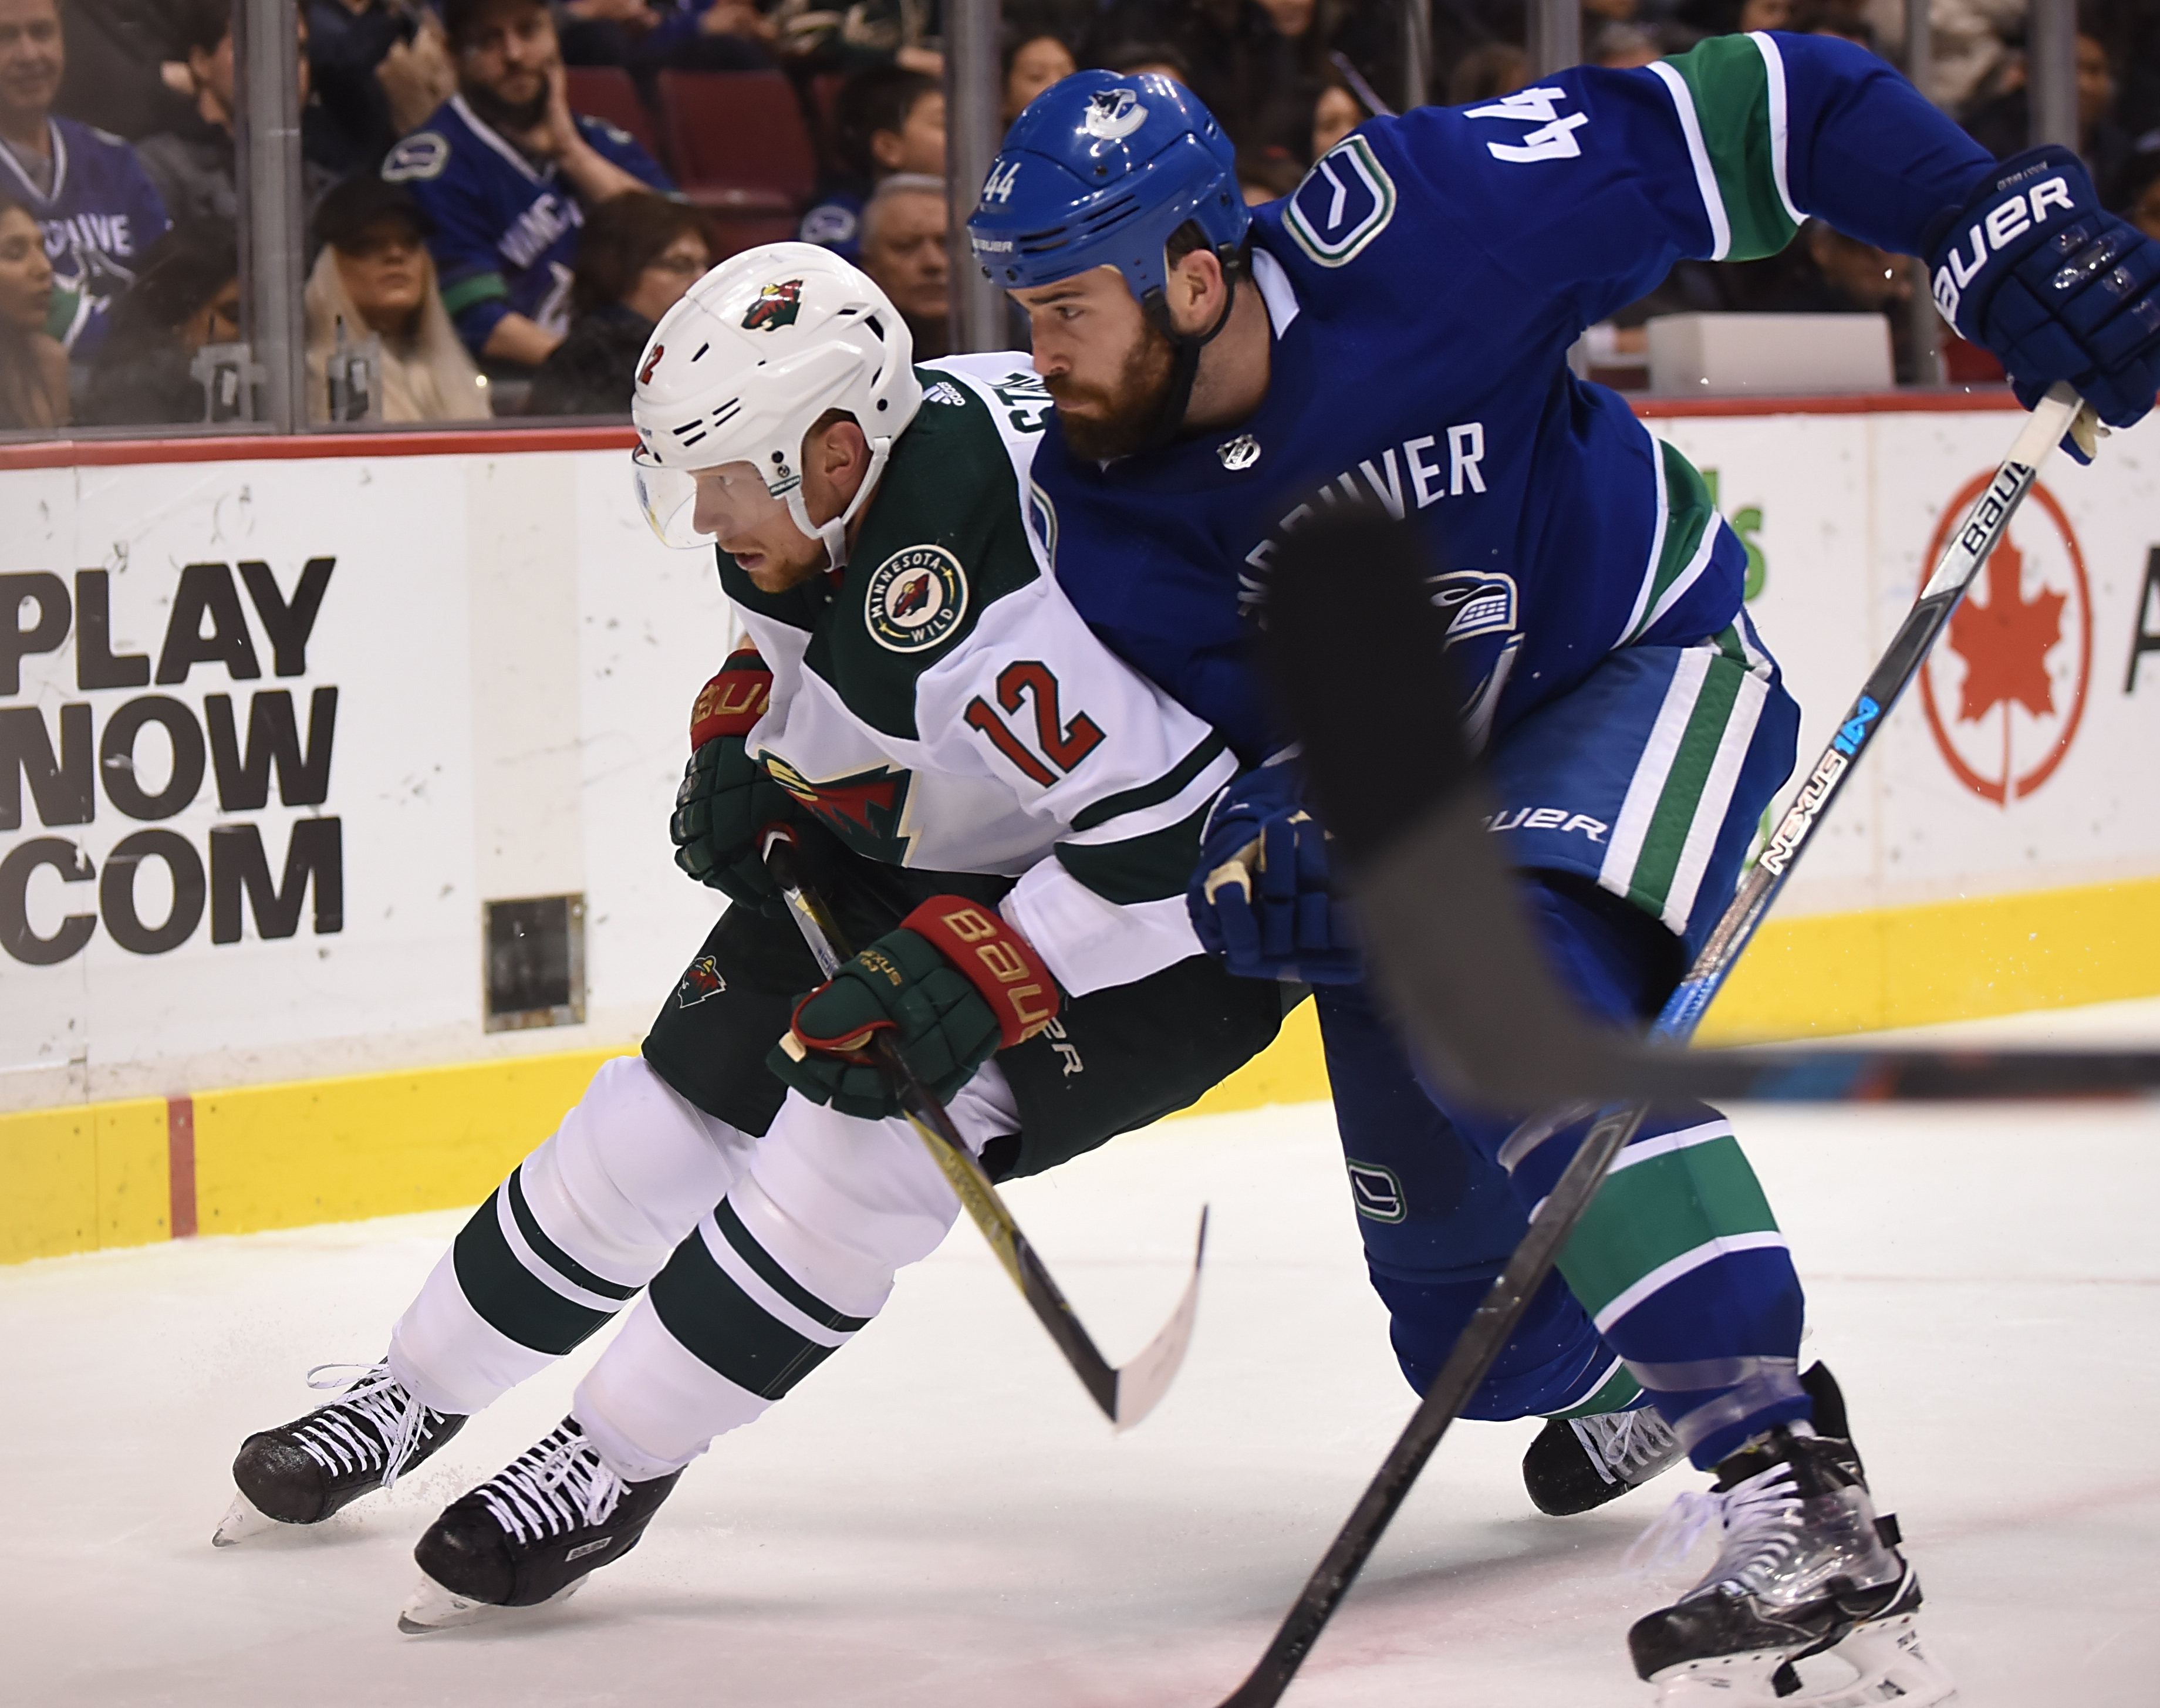 Game Preview: Minnesota Wild vs. Vancouver Canucks 10/29/18 @ 9:00PM at Rogers Arena